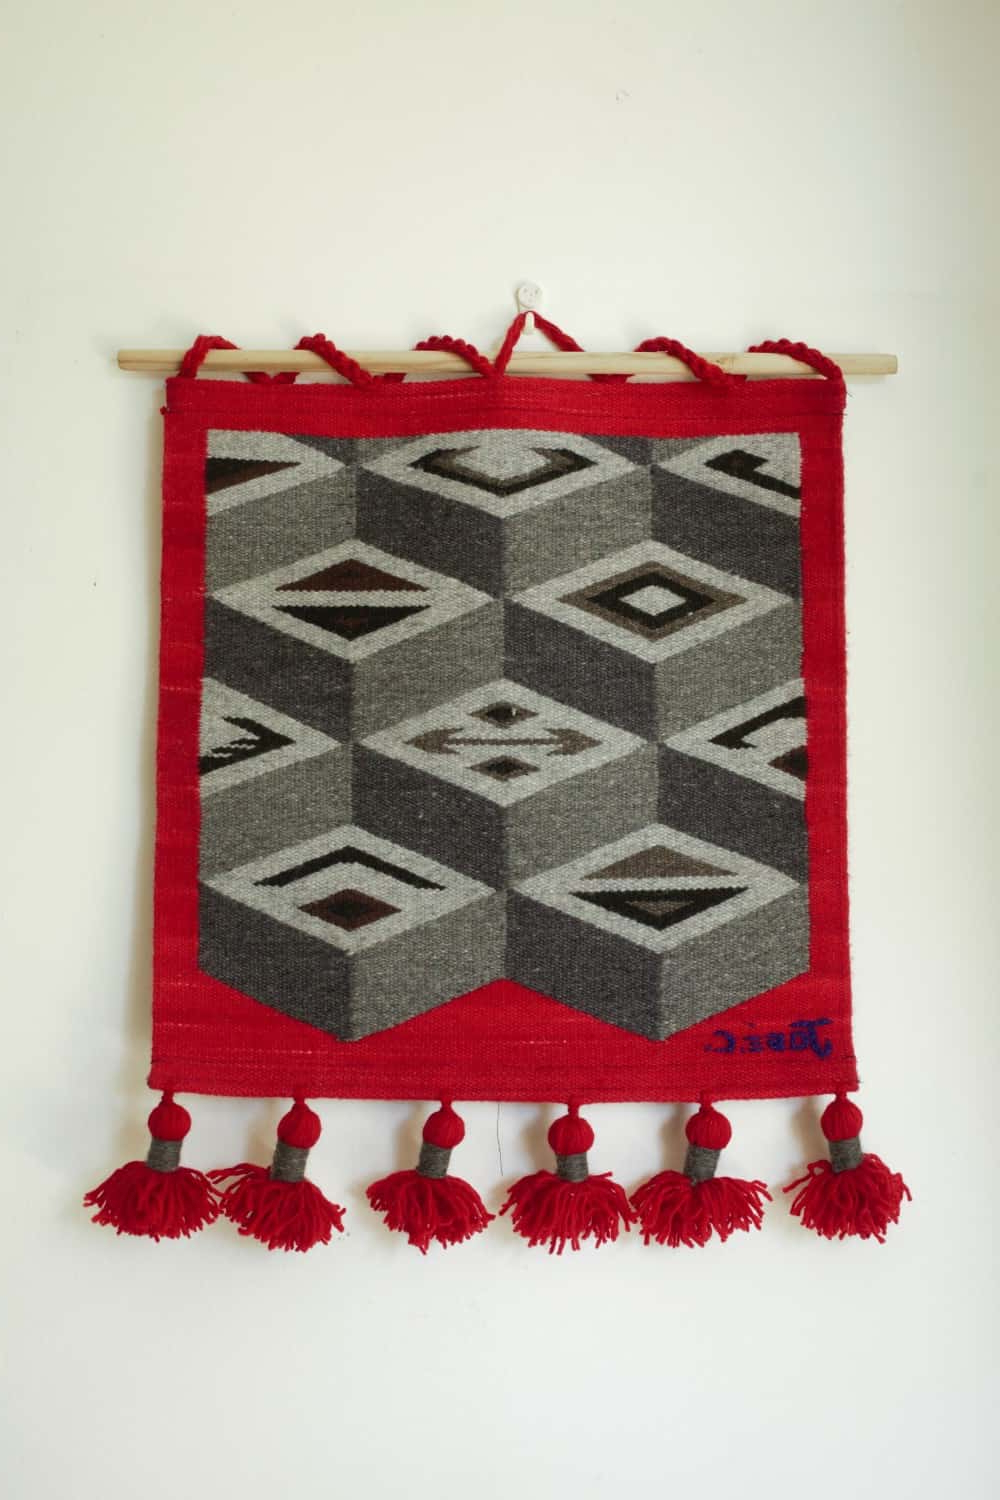 Hand Woven Wall Hangings – Geométrica Series Ct04gr With Regard To Well Known Hand Woven Wall Hangings (View 10 of 20)